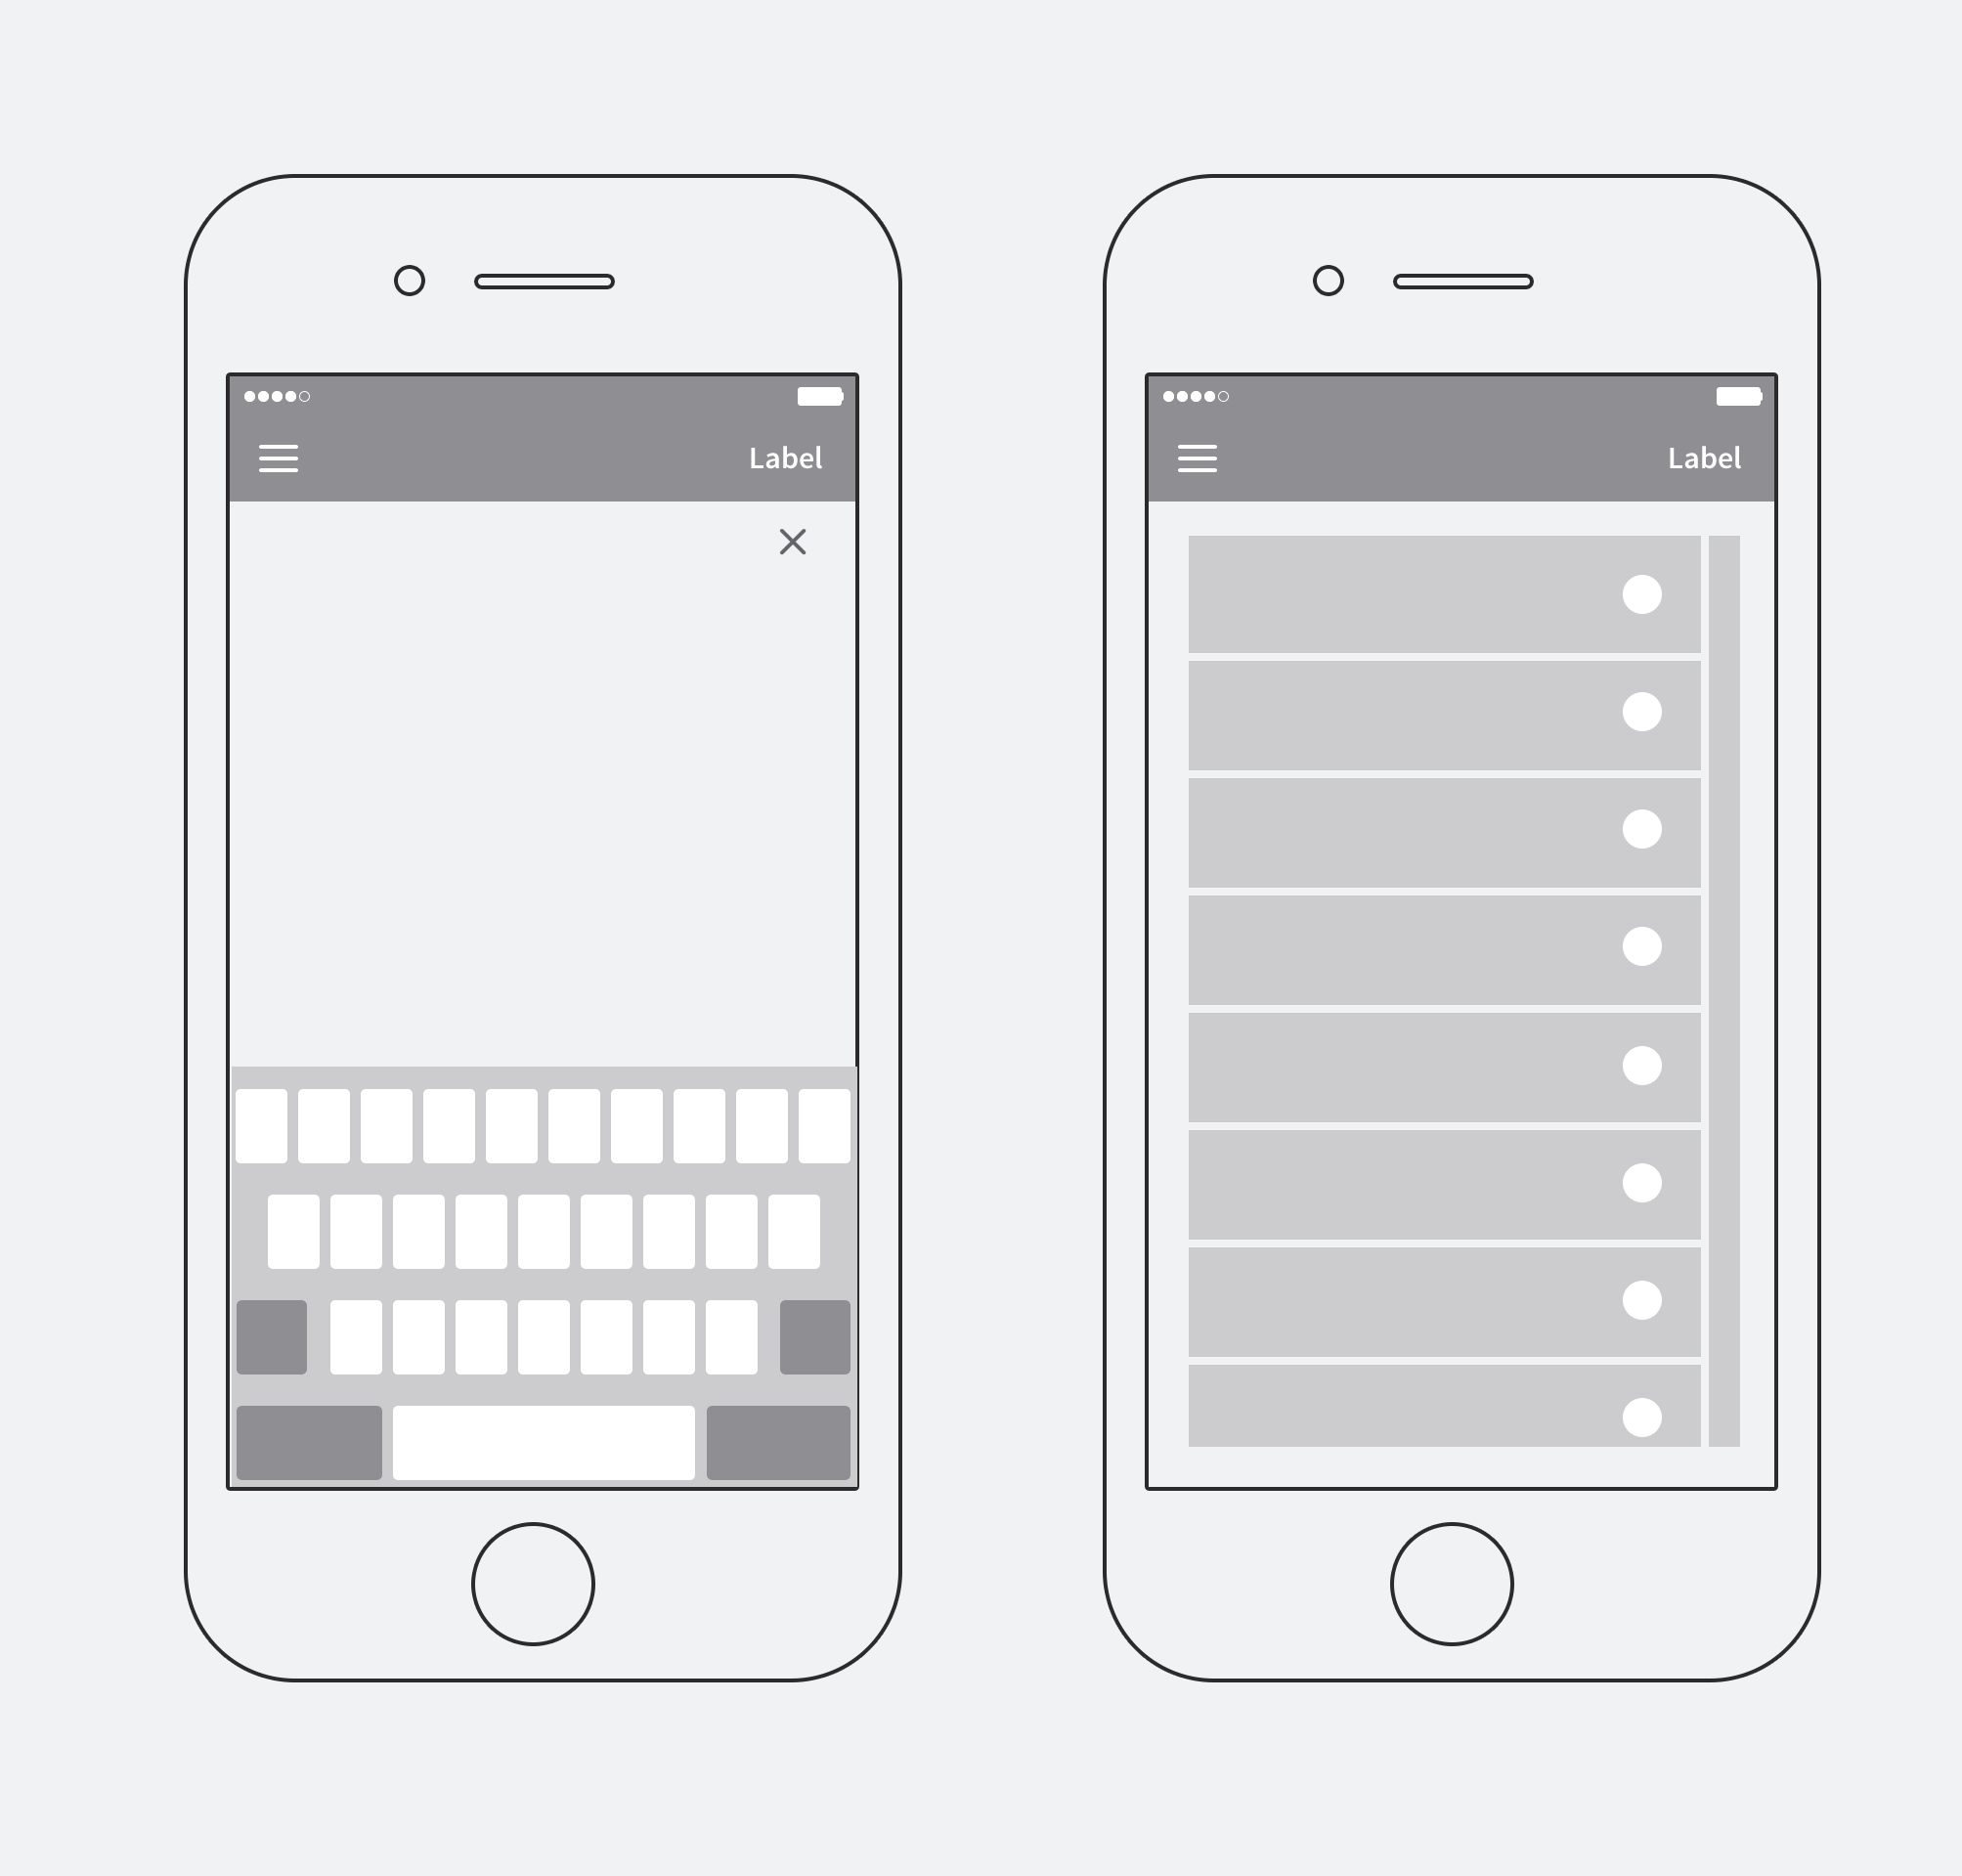 Keyboard and Dropdown UI from the native Android OS.